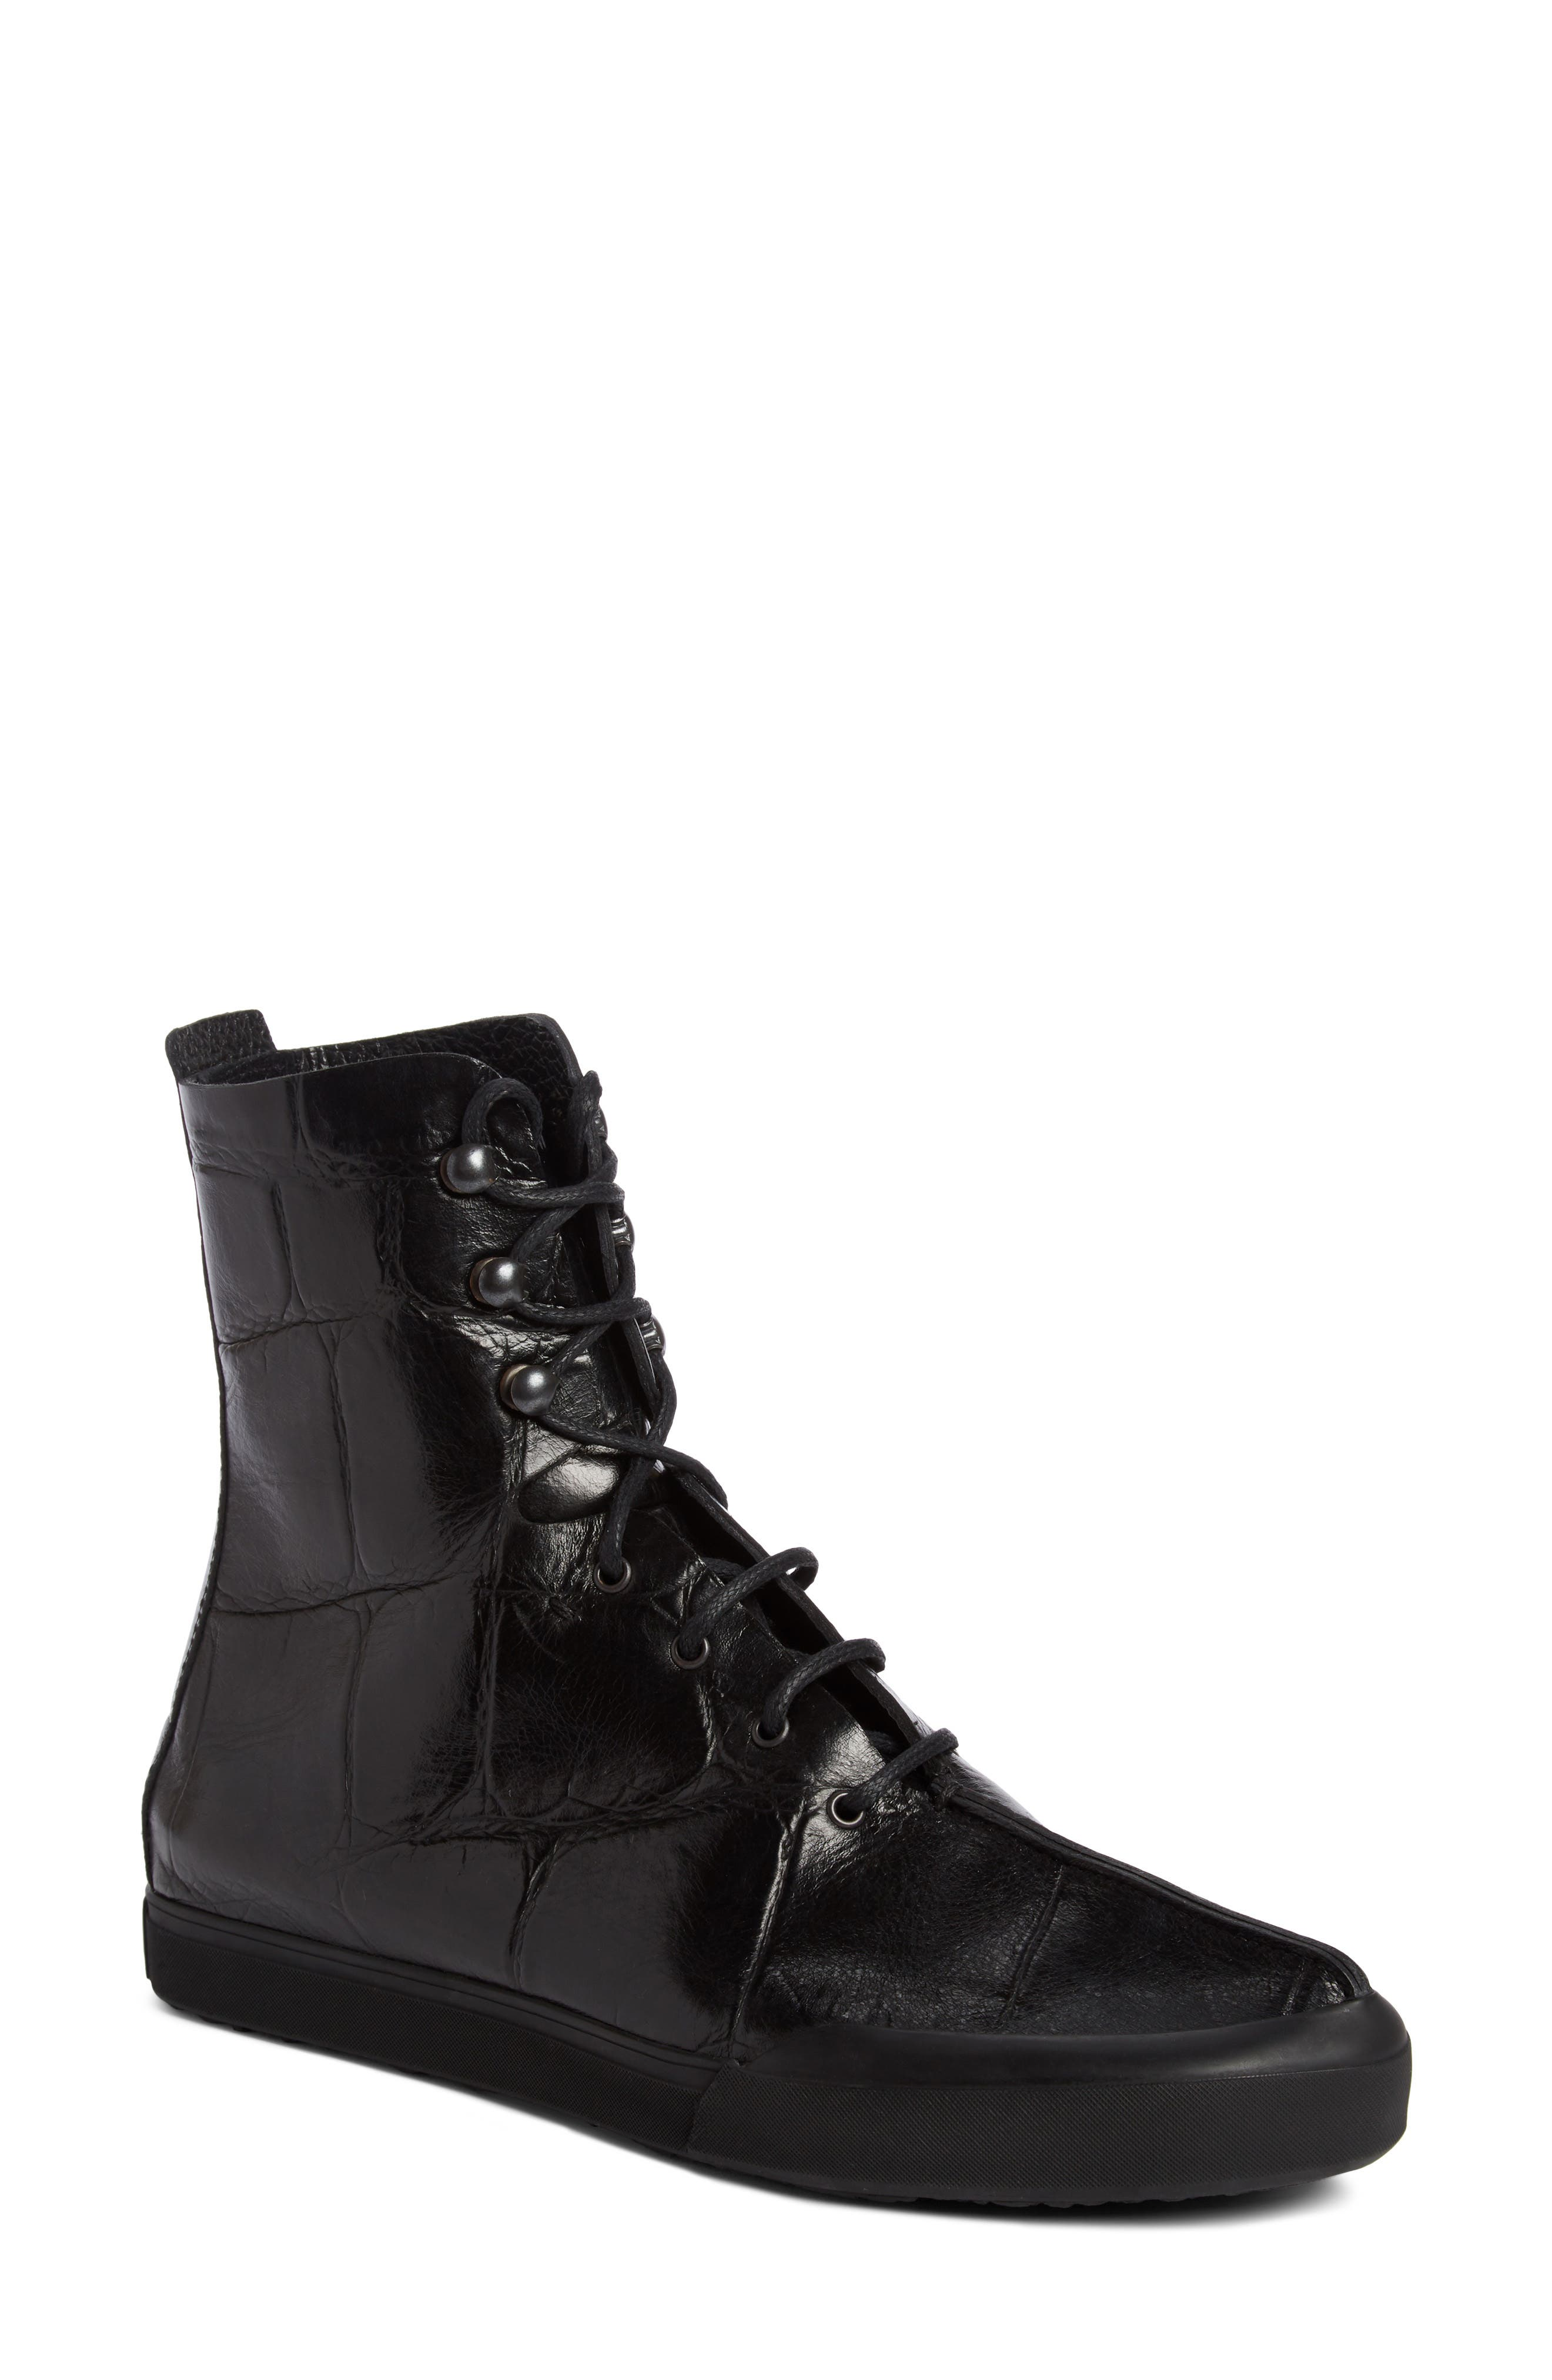 Croc Embossed Lace-Up Boot,                             Main thumbnail 1, color,                             Black